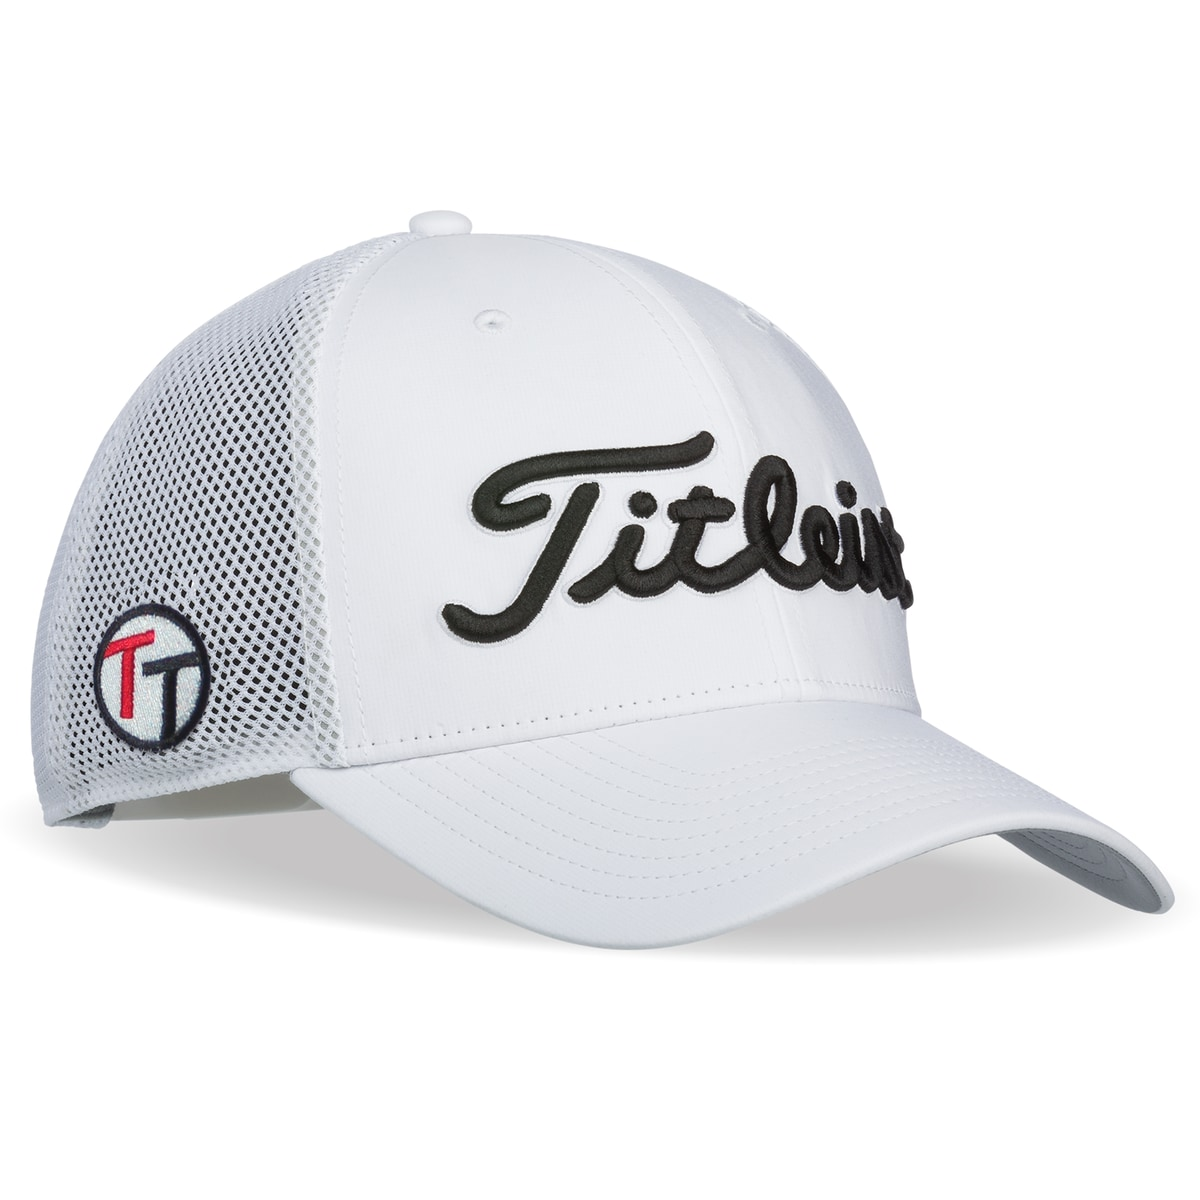 Team Titleist Tour Snapback Mesh